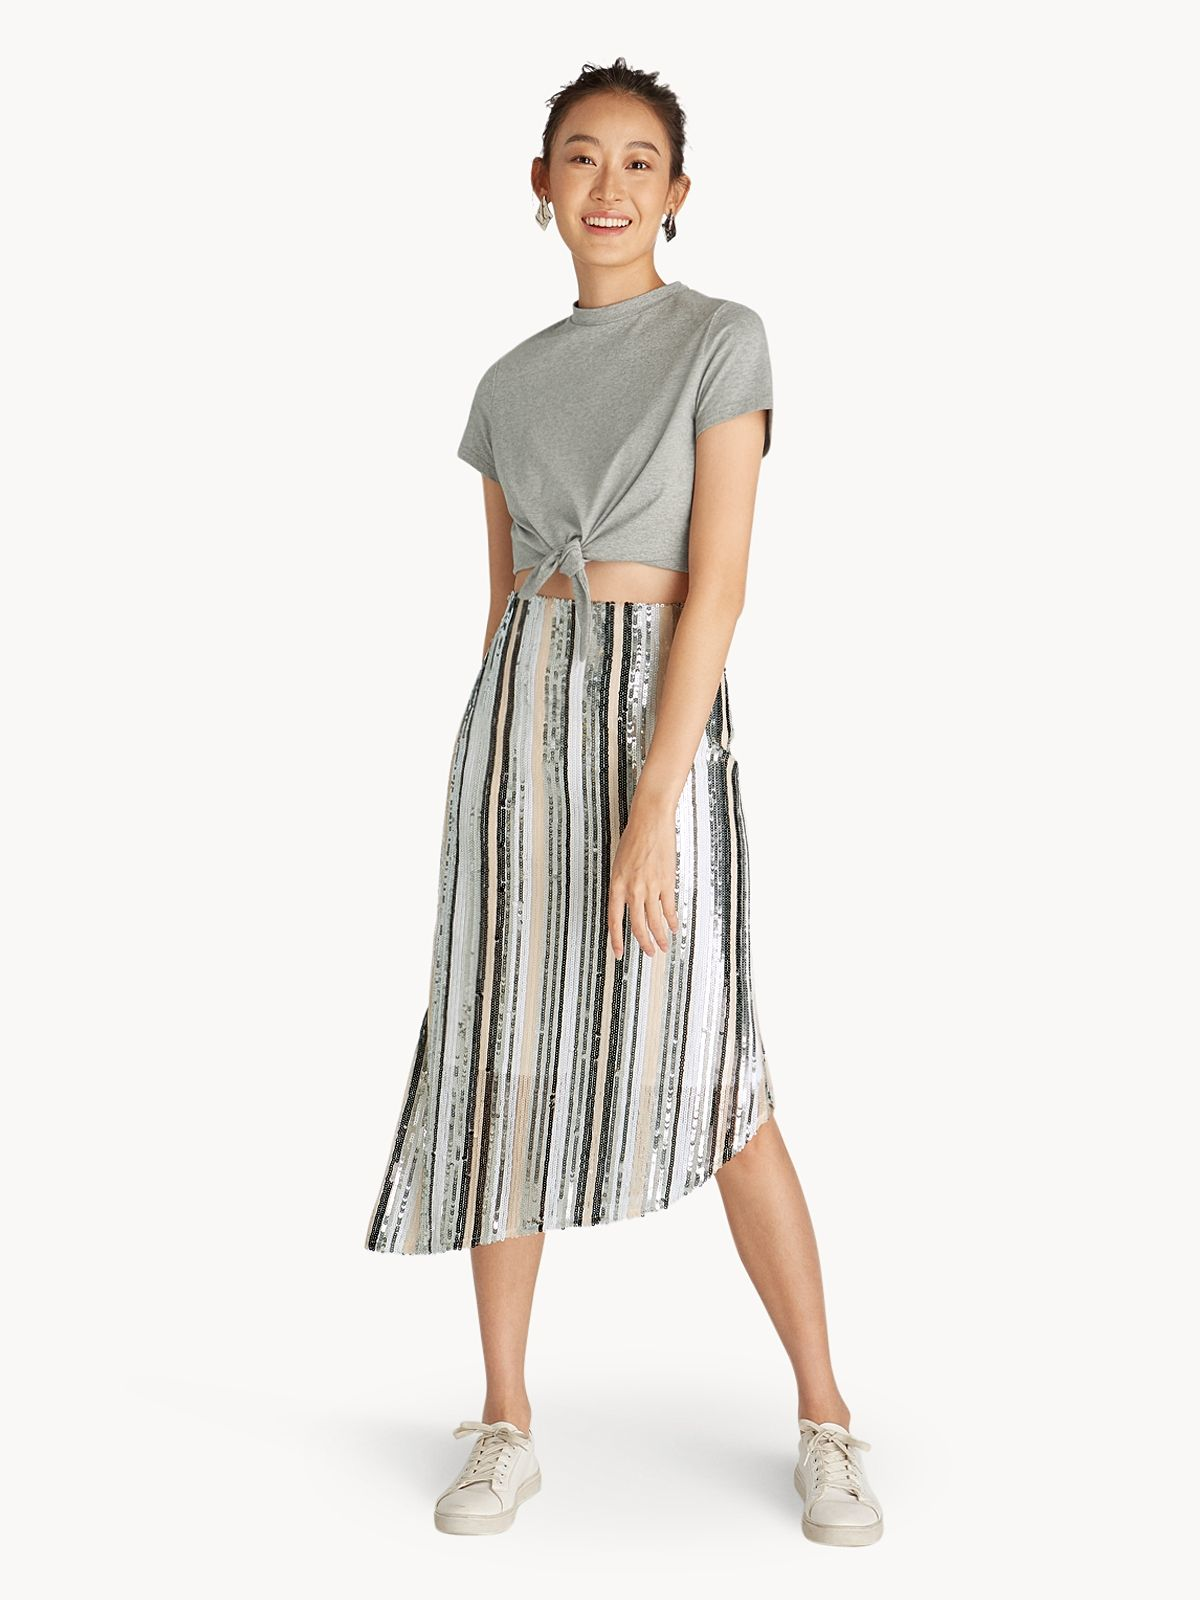 a02f508afe Sequins Polyester Classic, regular fit Features an asymmetrical hemline  design Includes an invisible back zip